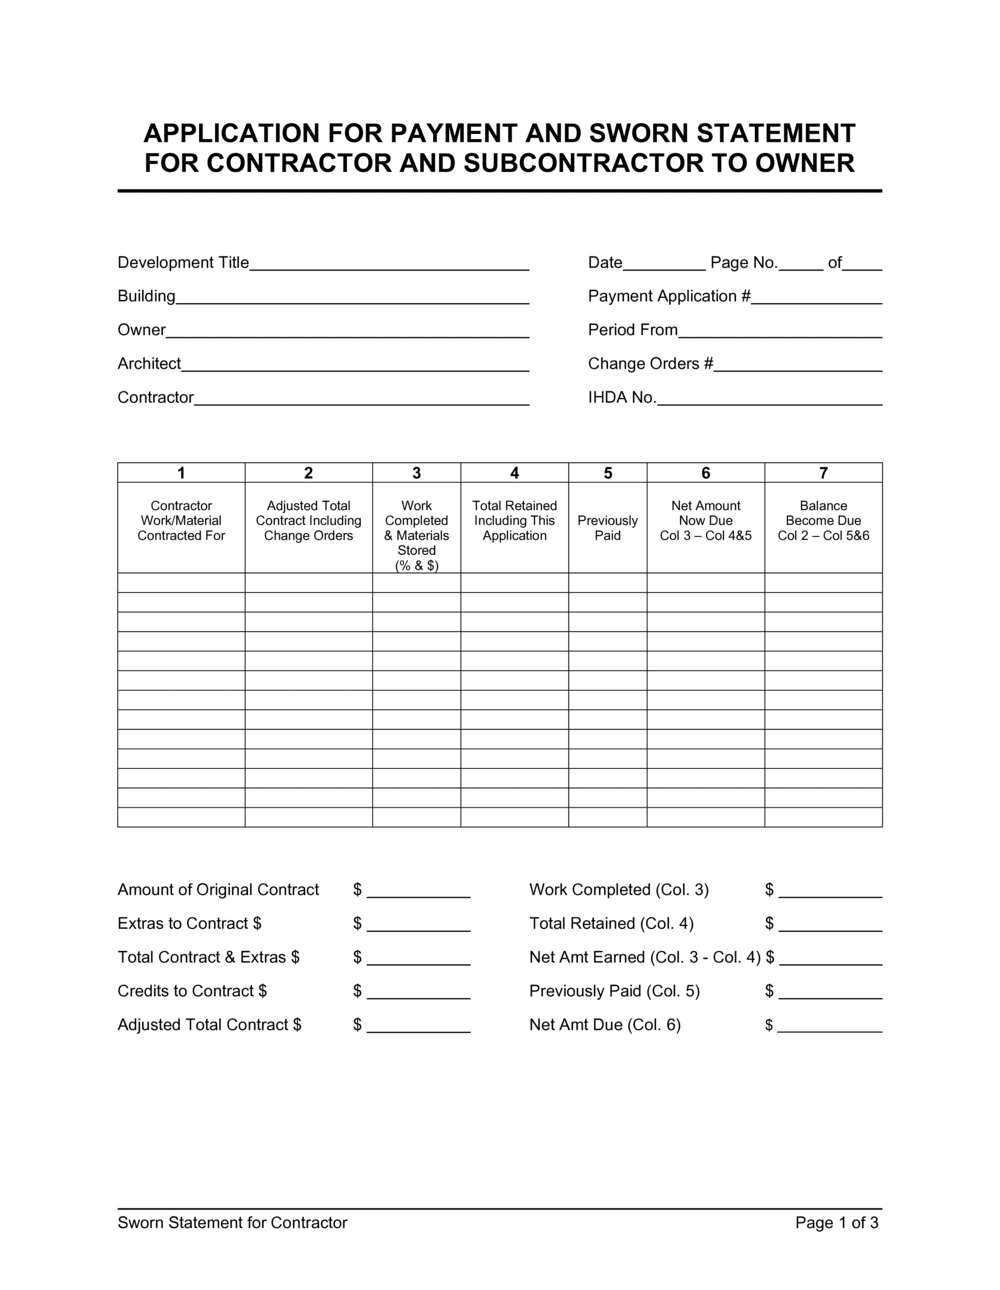 Business-in-a-Box's Sworn Statement for Contractor Template